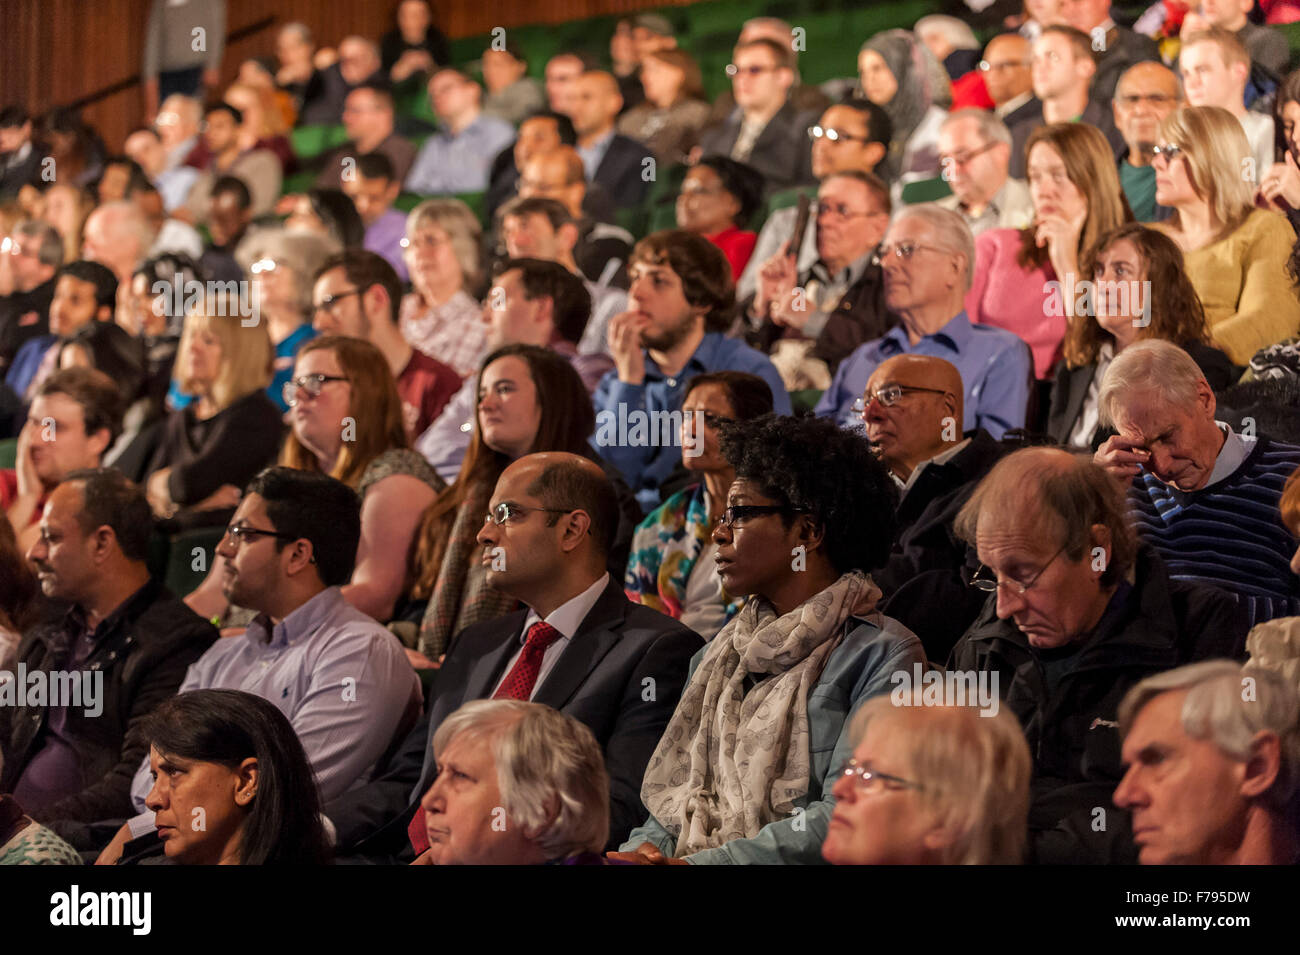 London, UK.  26 November 2015.  Members of the public at People's Question Time, at the Beck Theatre, Hillingdon. - Stock Image